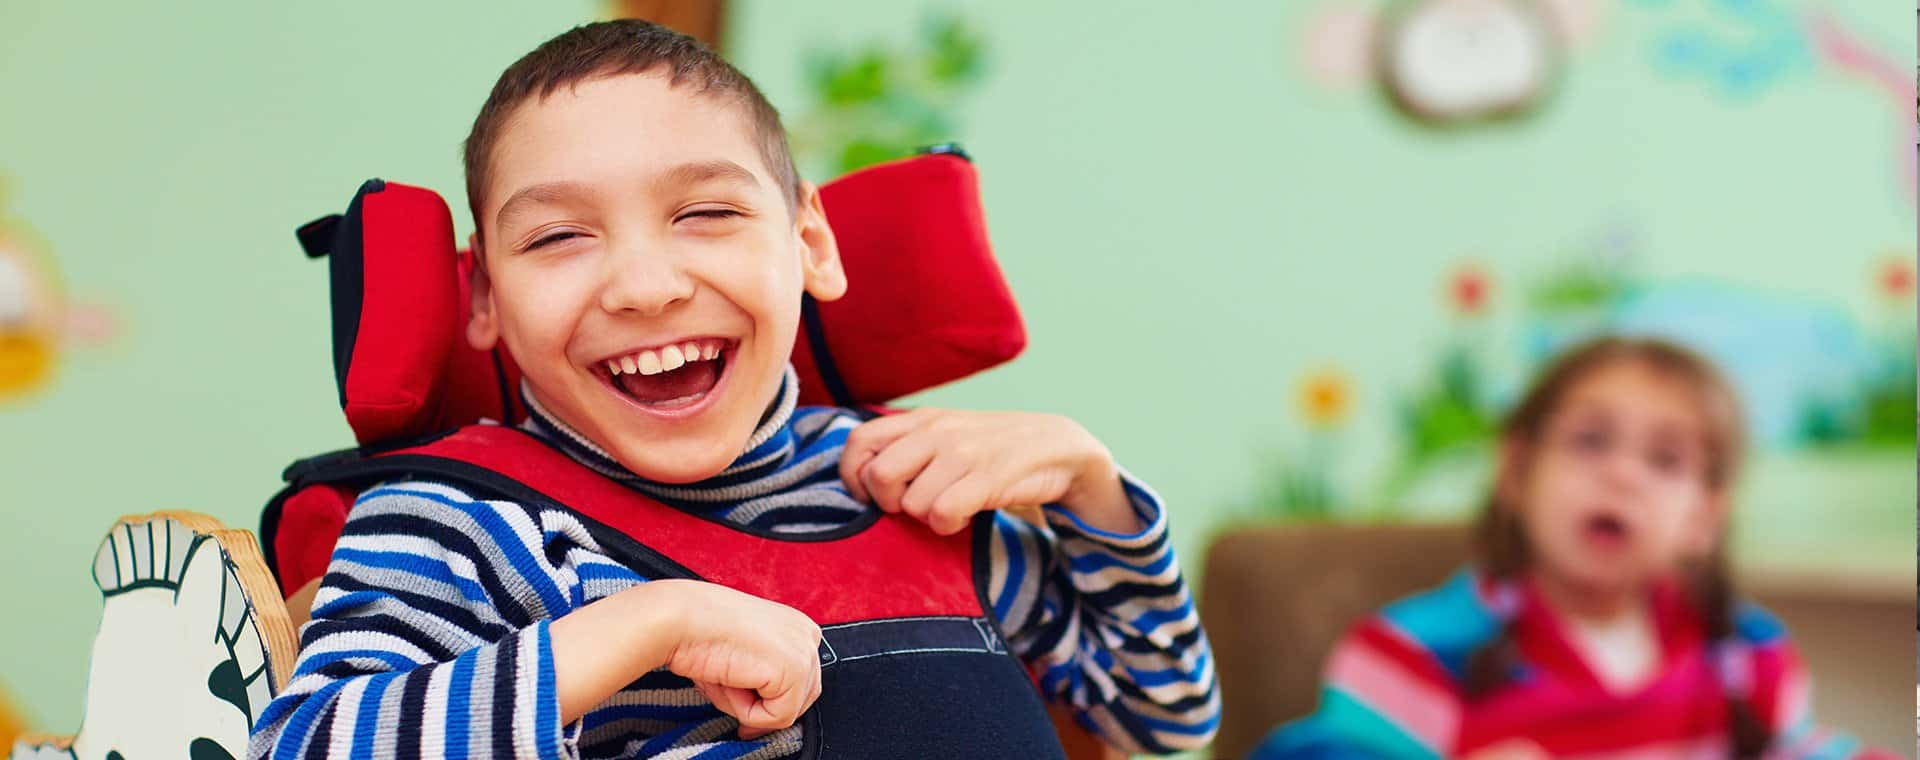 child in wheelchair laughing